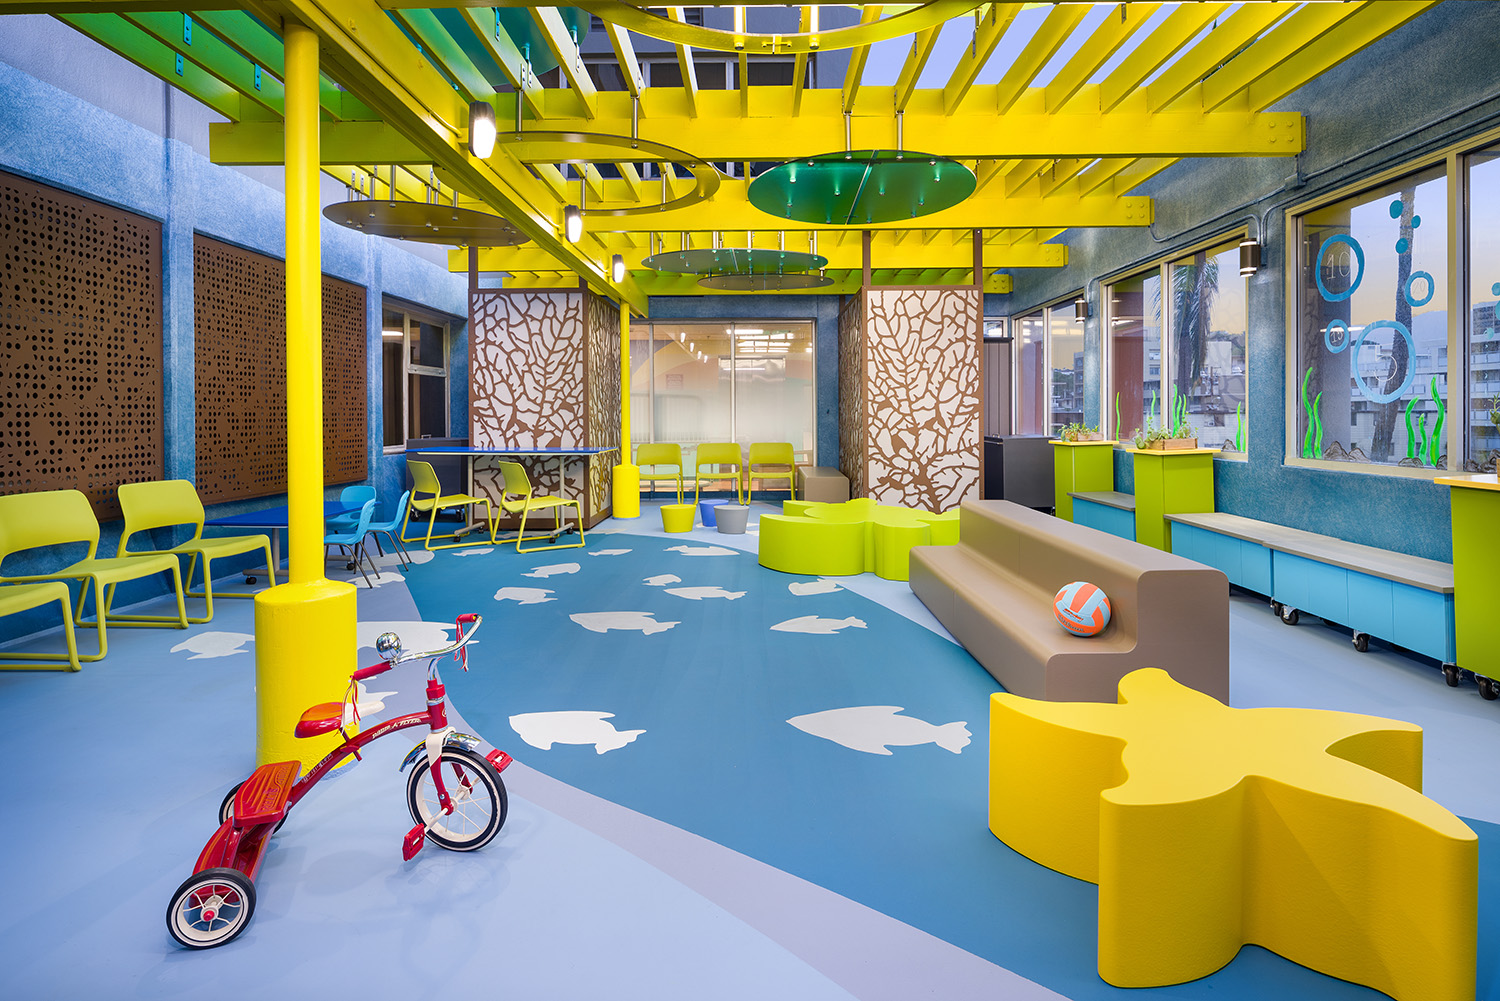 photo of new playroom at Kapiolani medical center for women and children